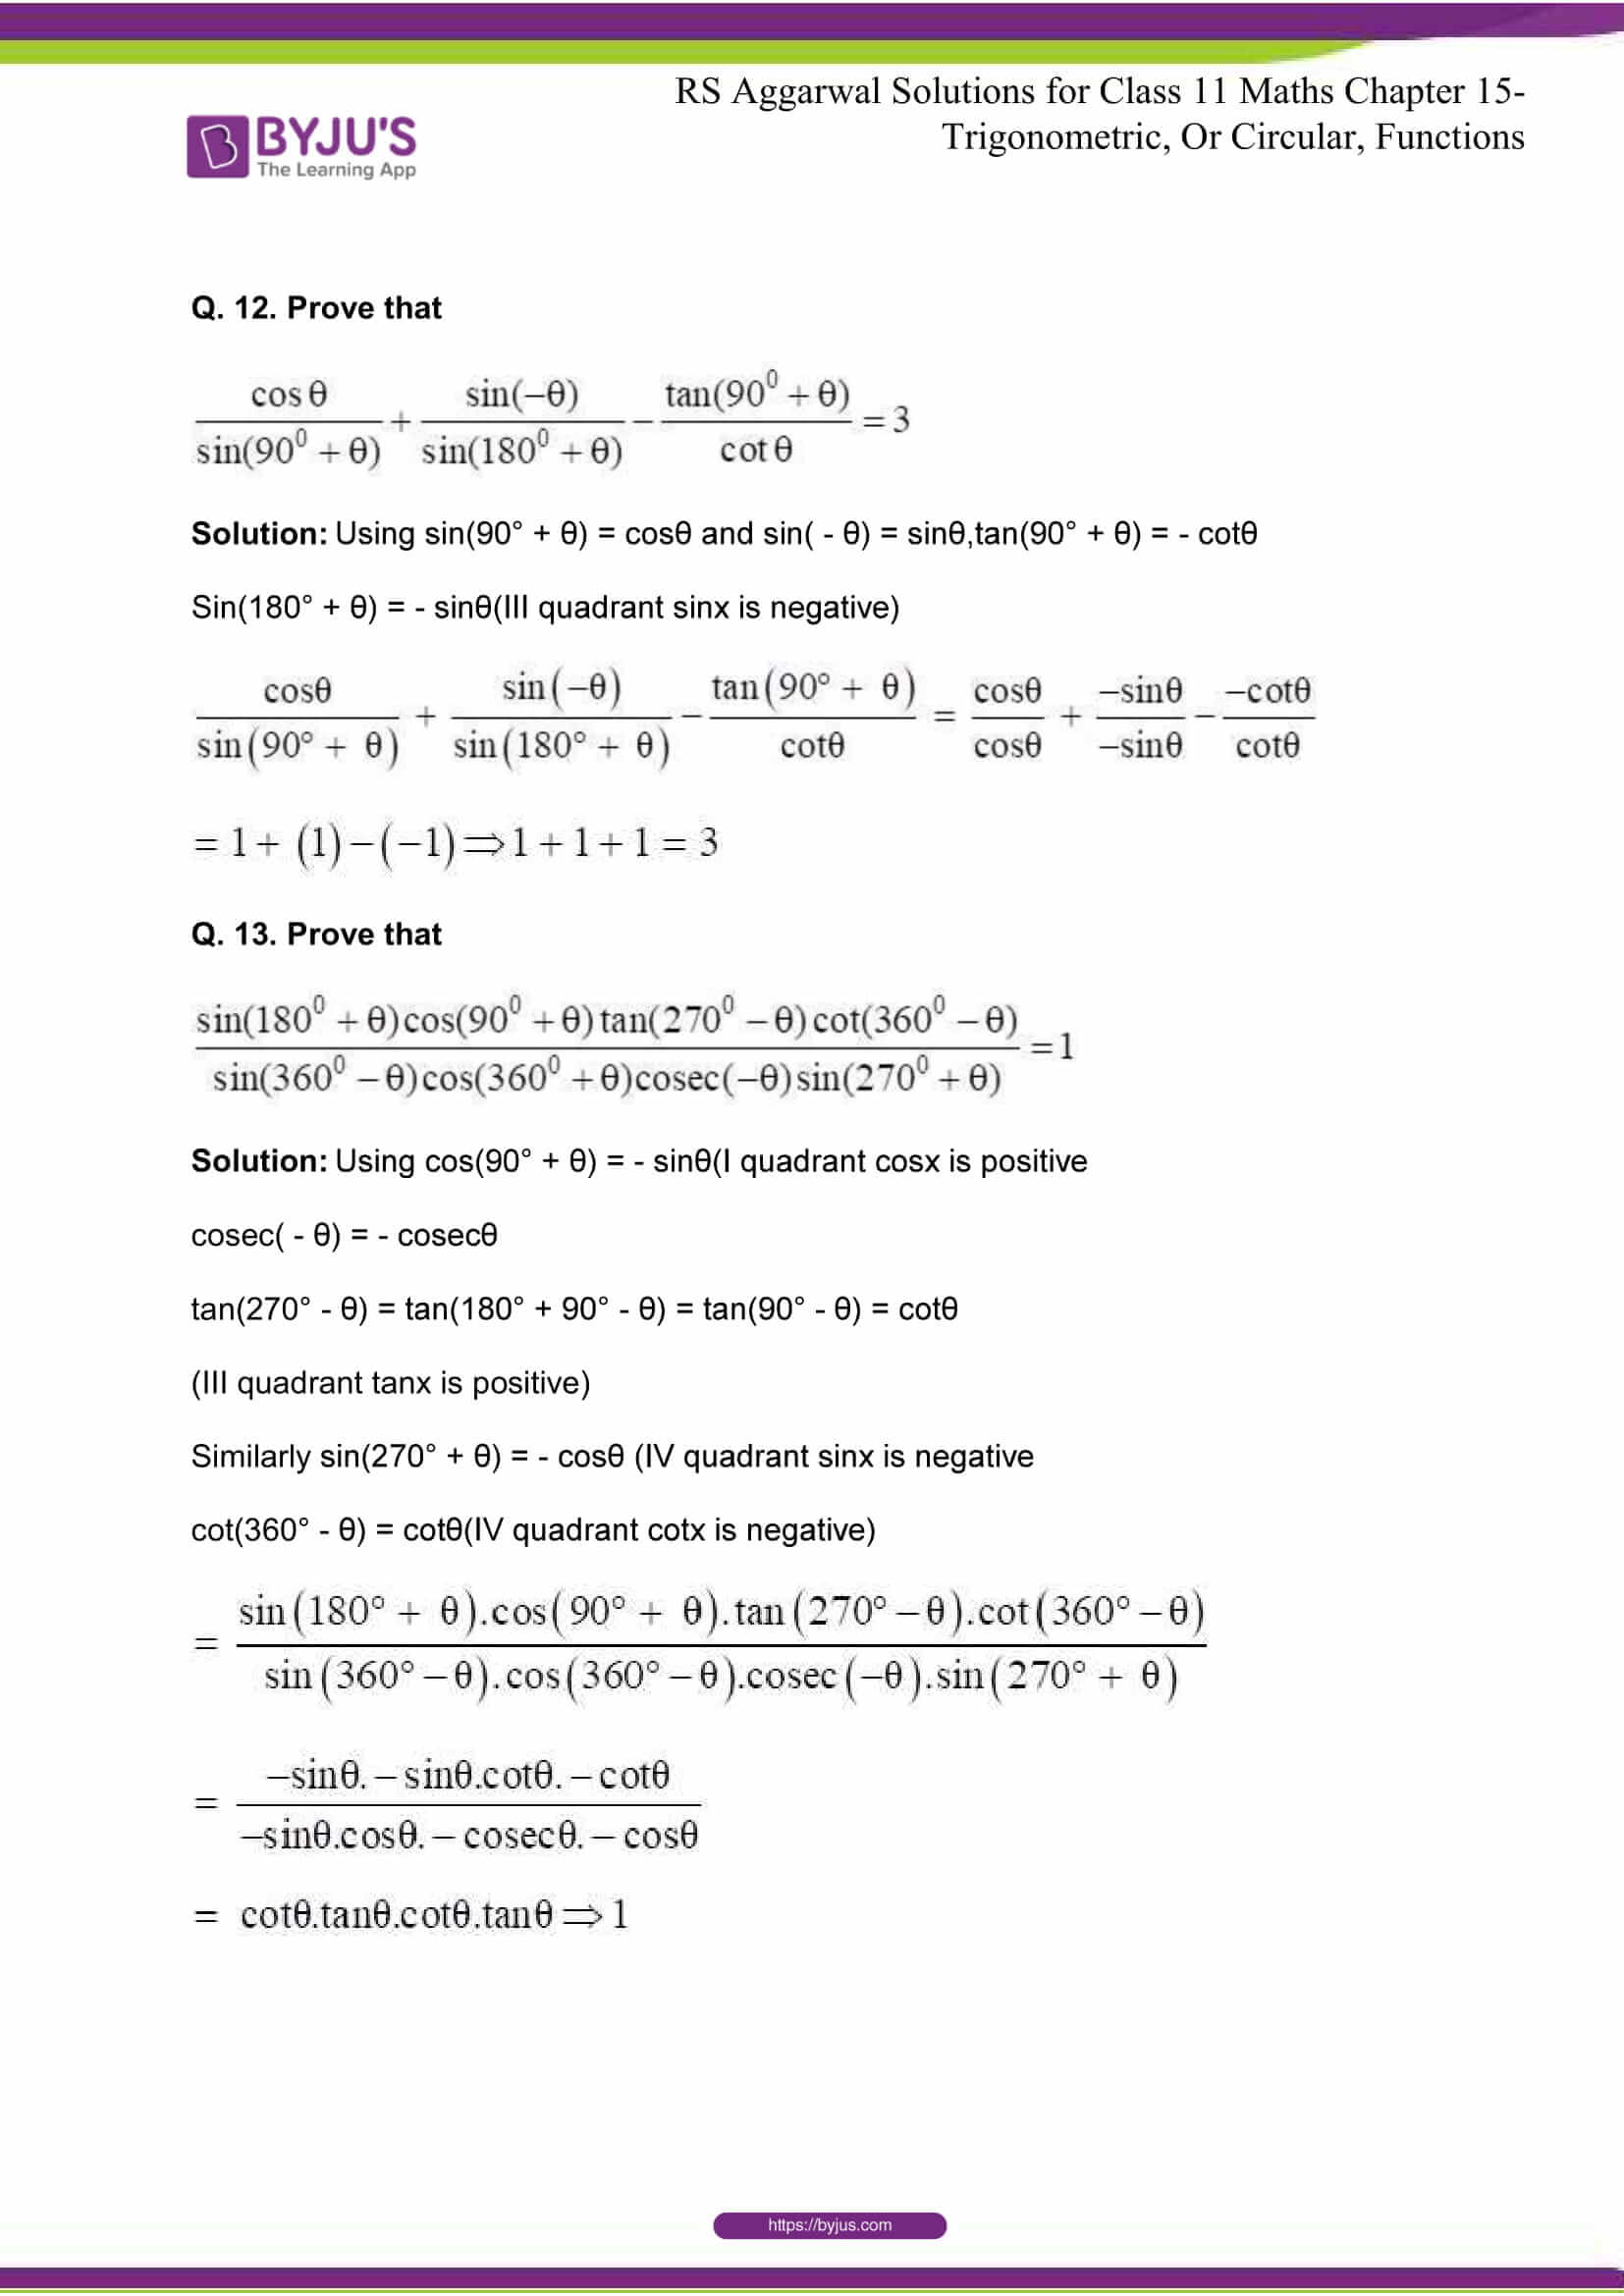 rsaggarwal solutions class 11 maths chapter 15 042